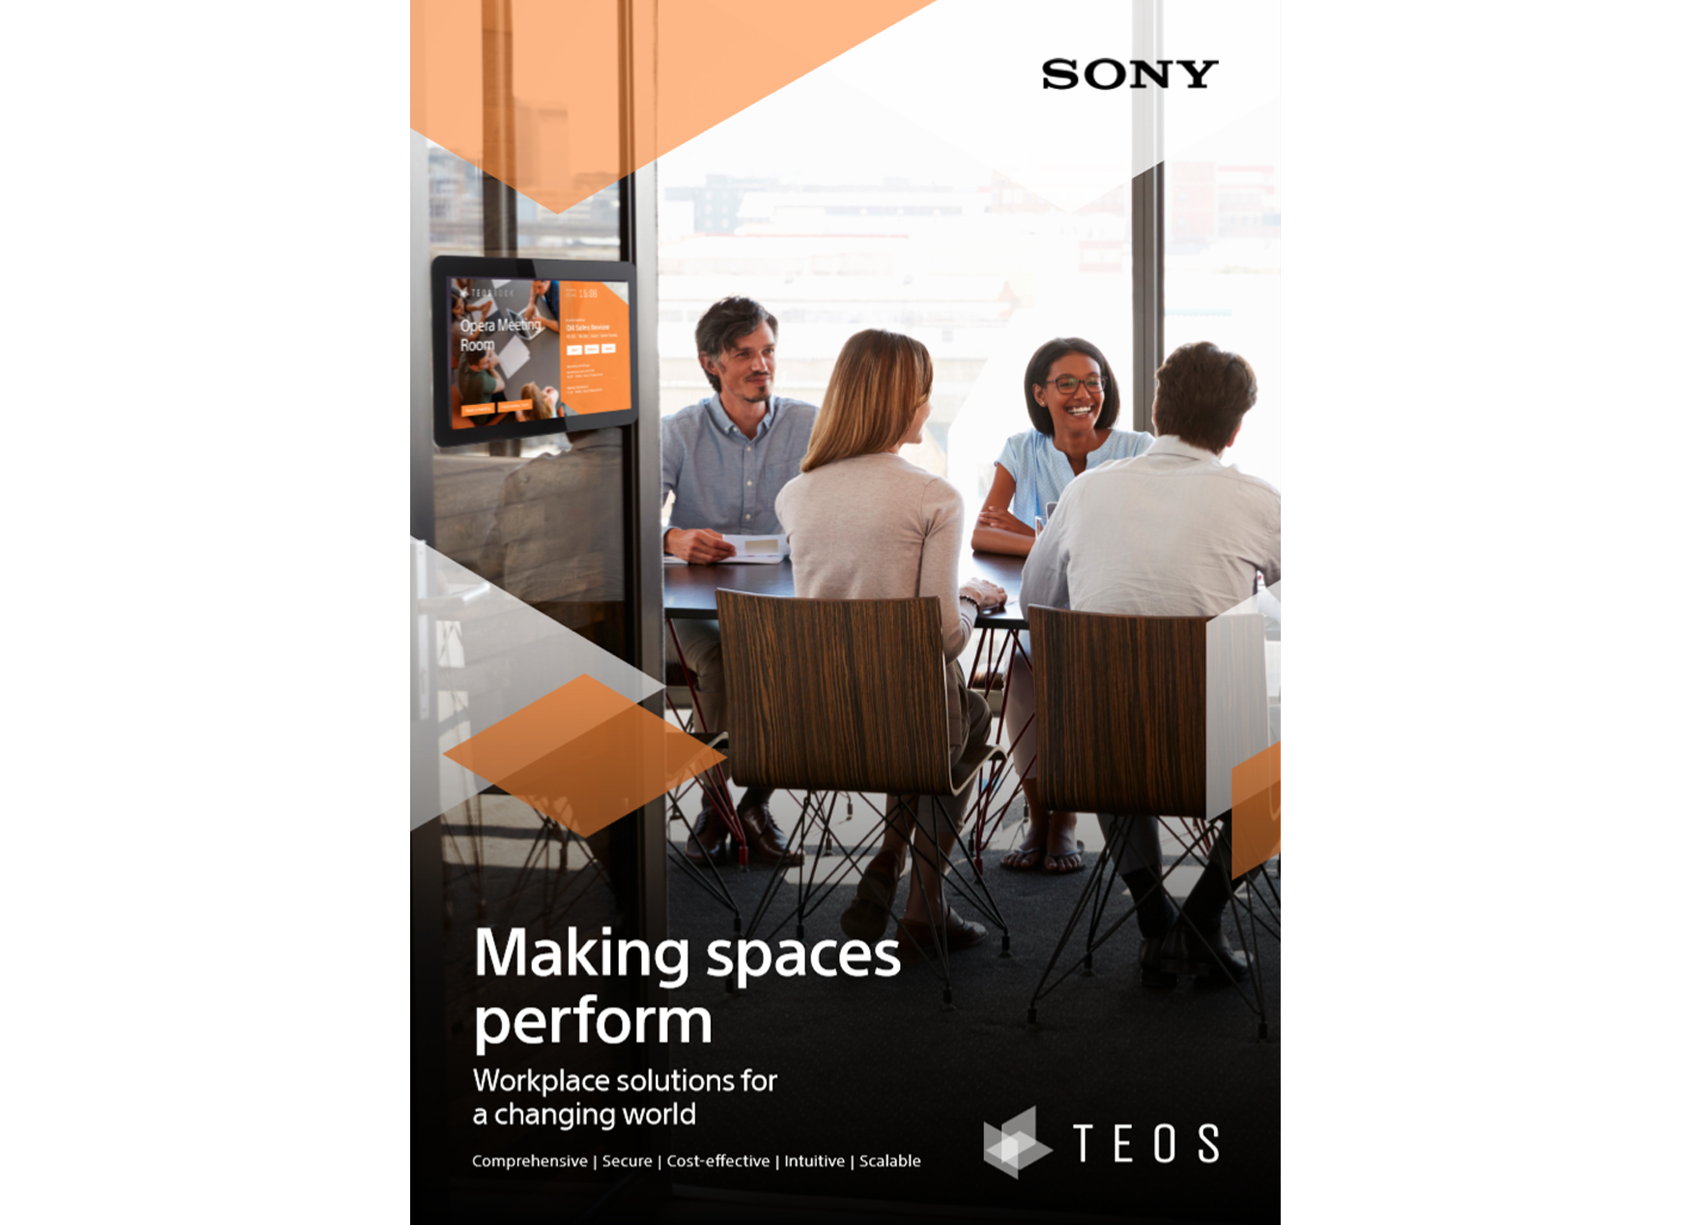 Front page of TEOS brochure: Making spaces perform, workplace solutions for a changing world